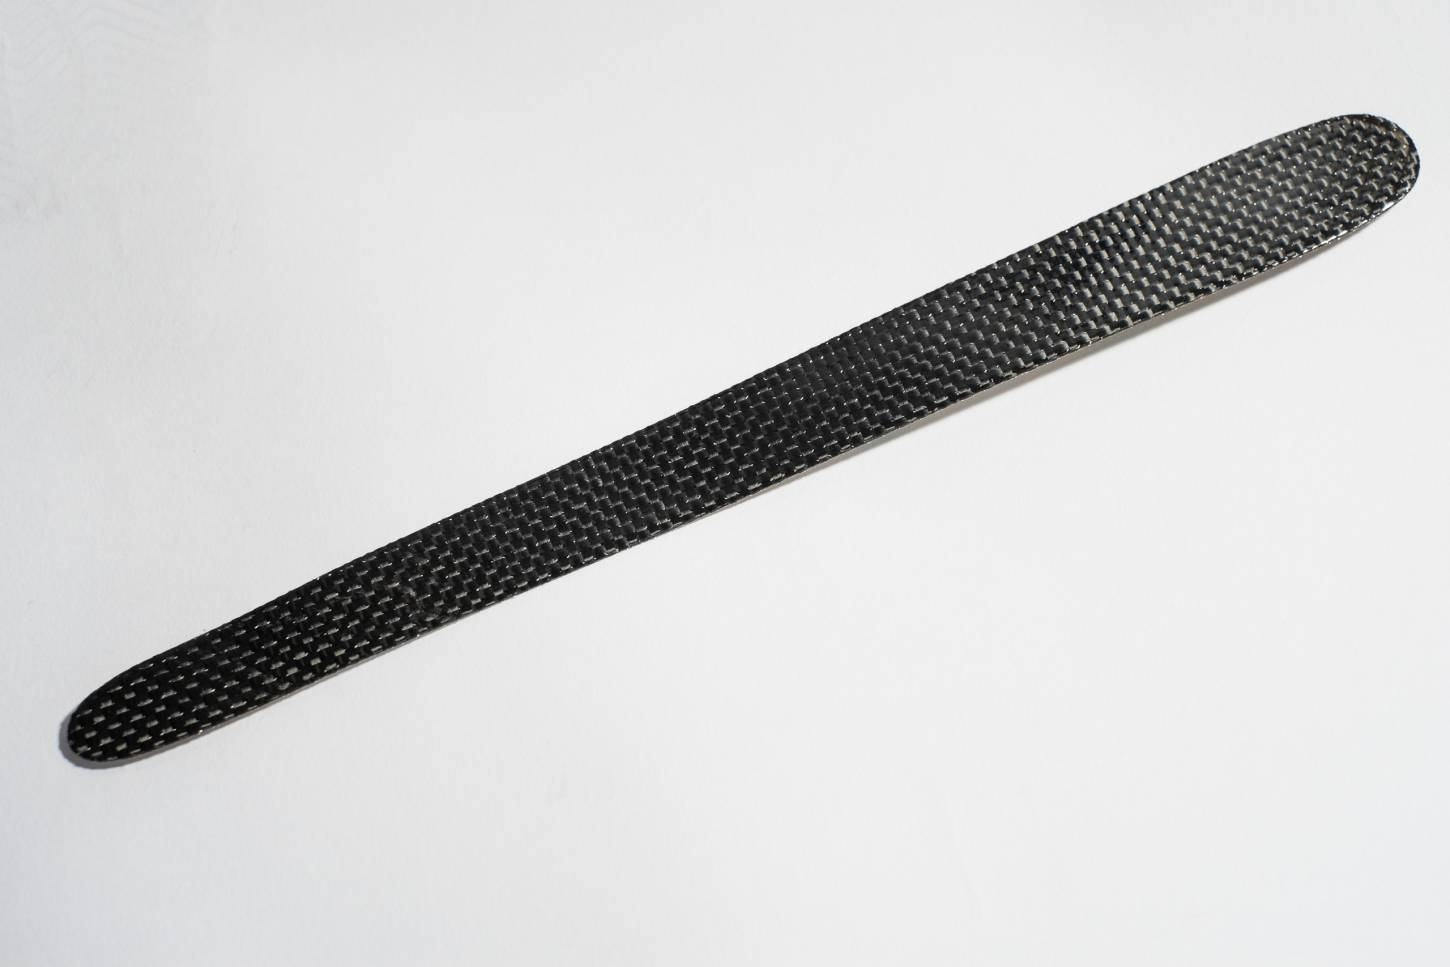 """Chainstay protector impact protection for chainstay """"Carbonlook"""" self-adhesive"""